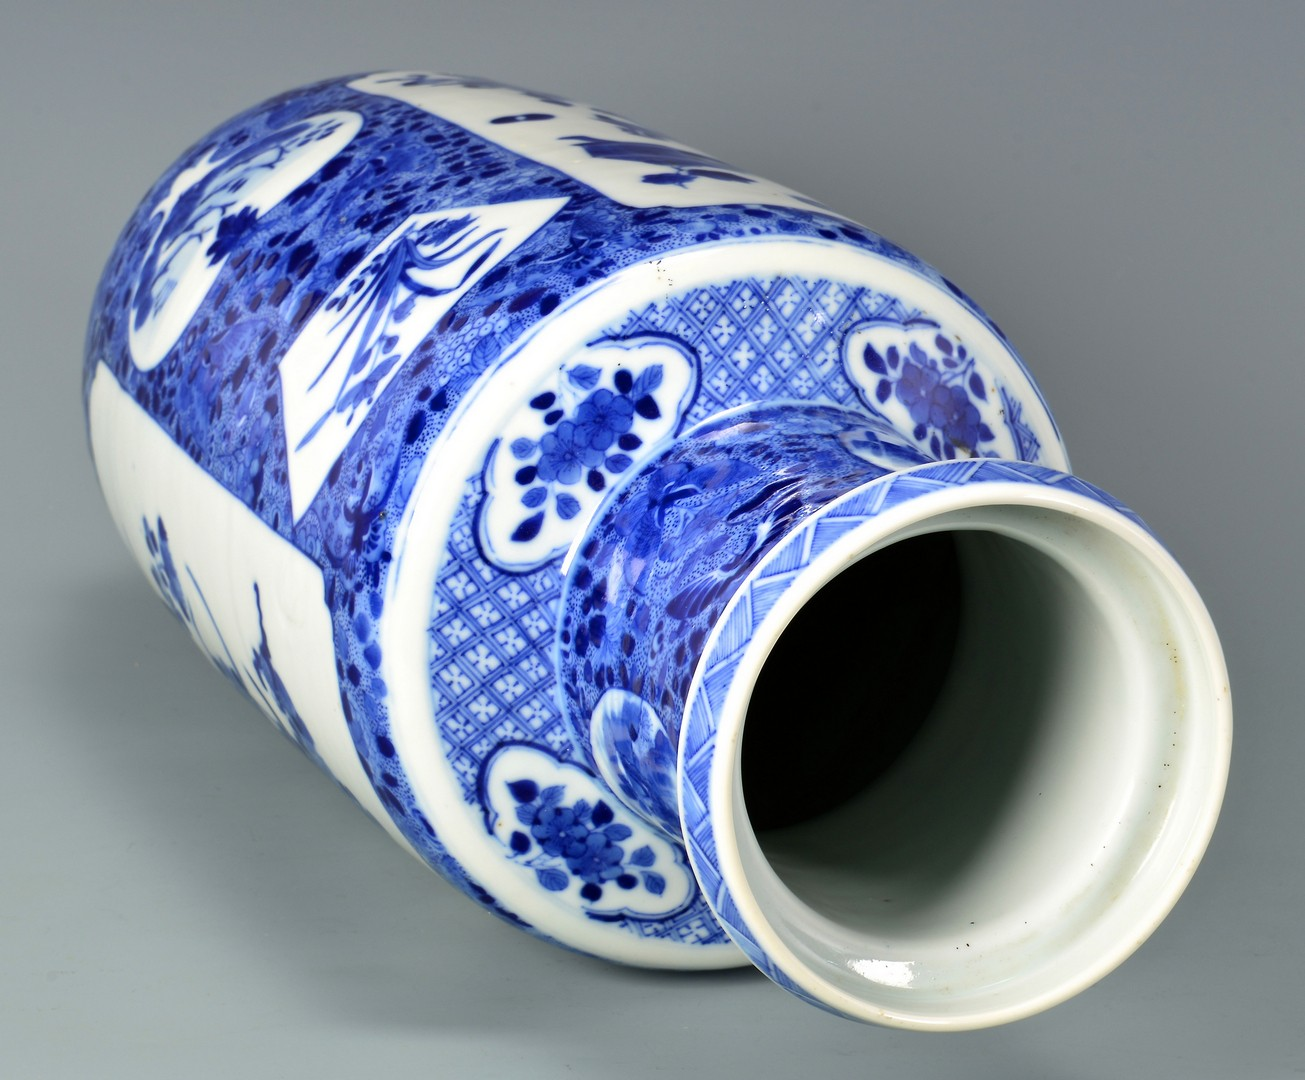 Lot 4010066: Chinese Blue & White Rouleau Vase